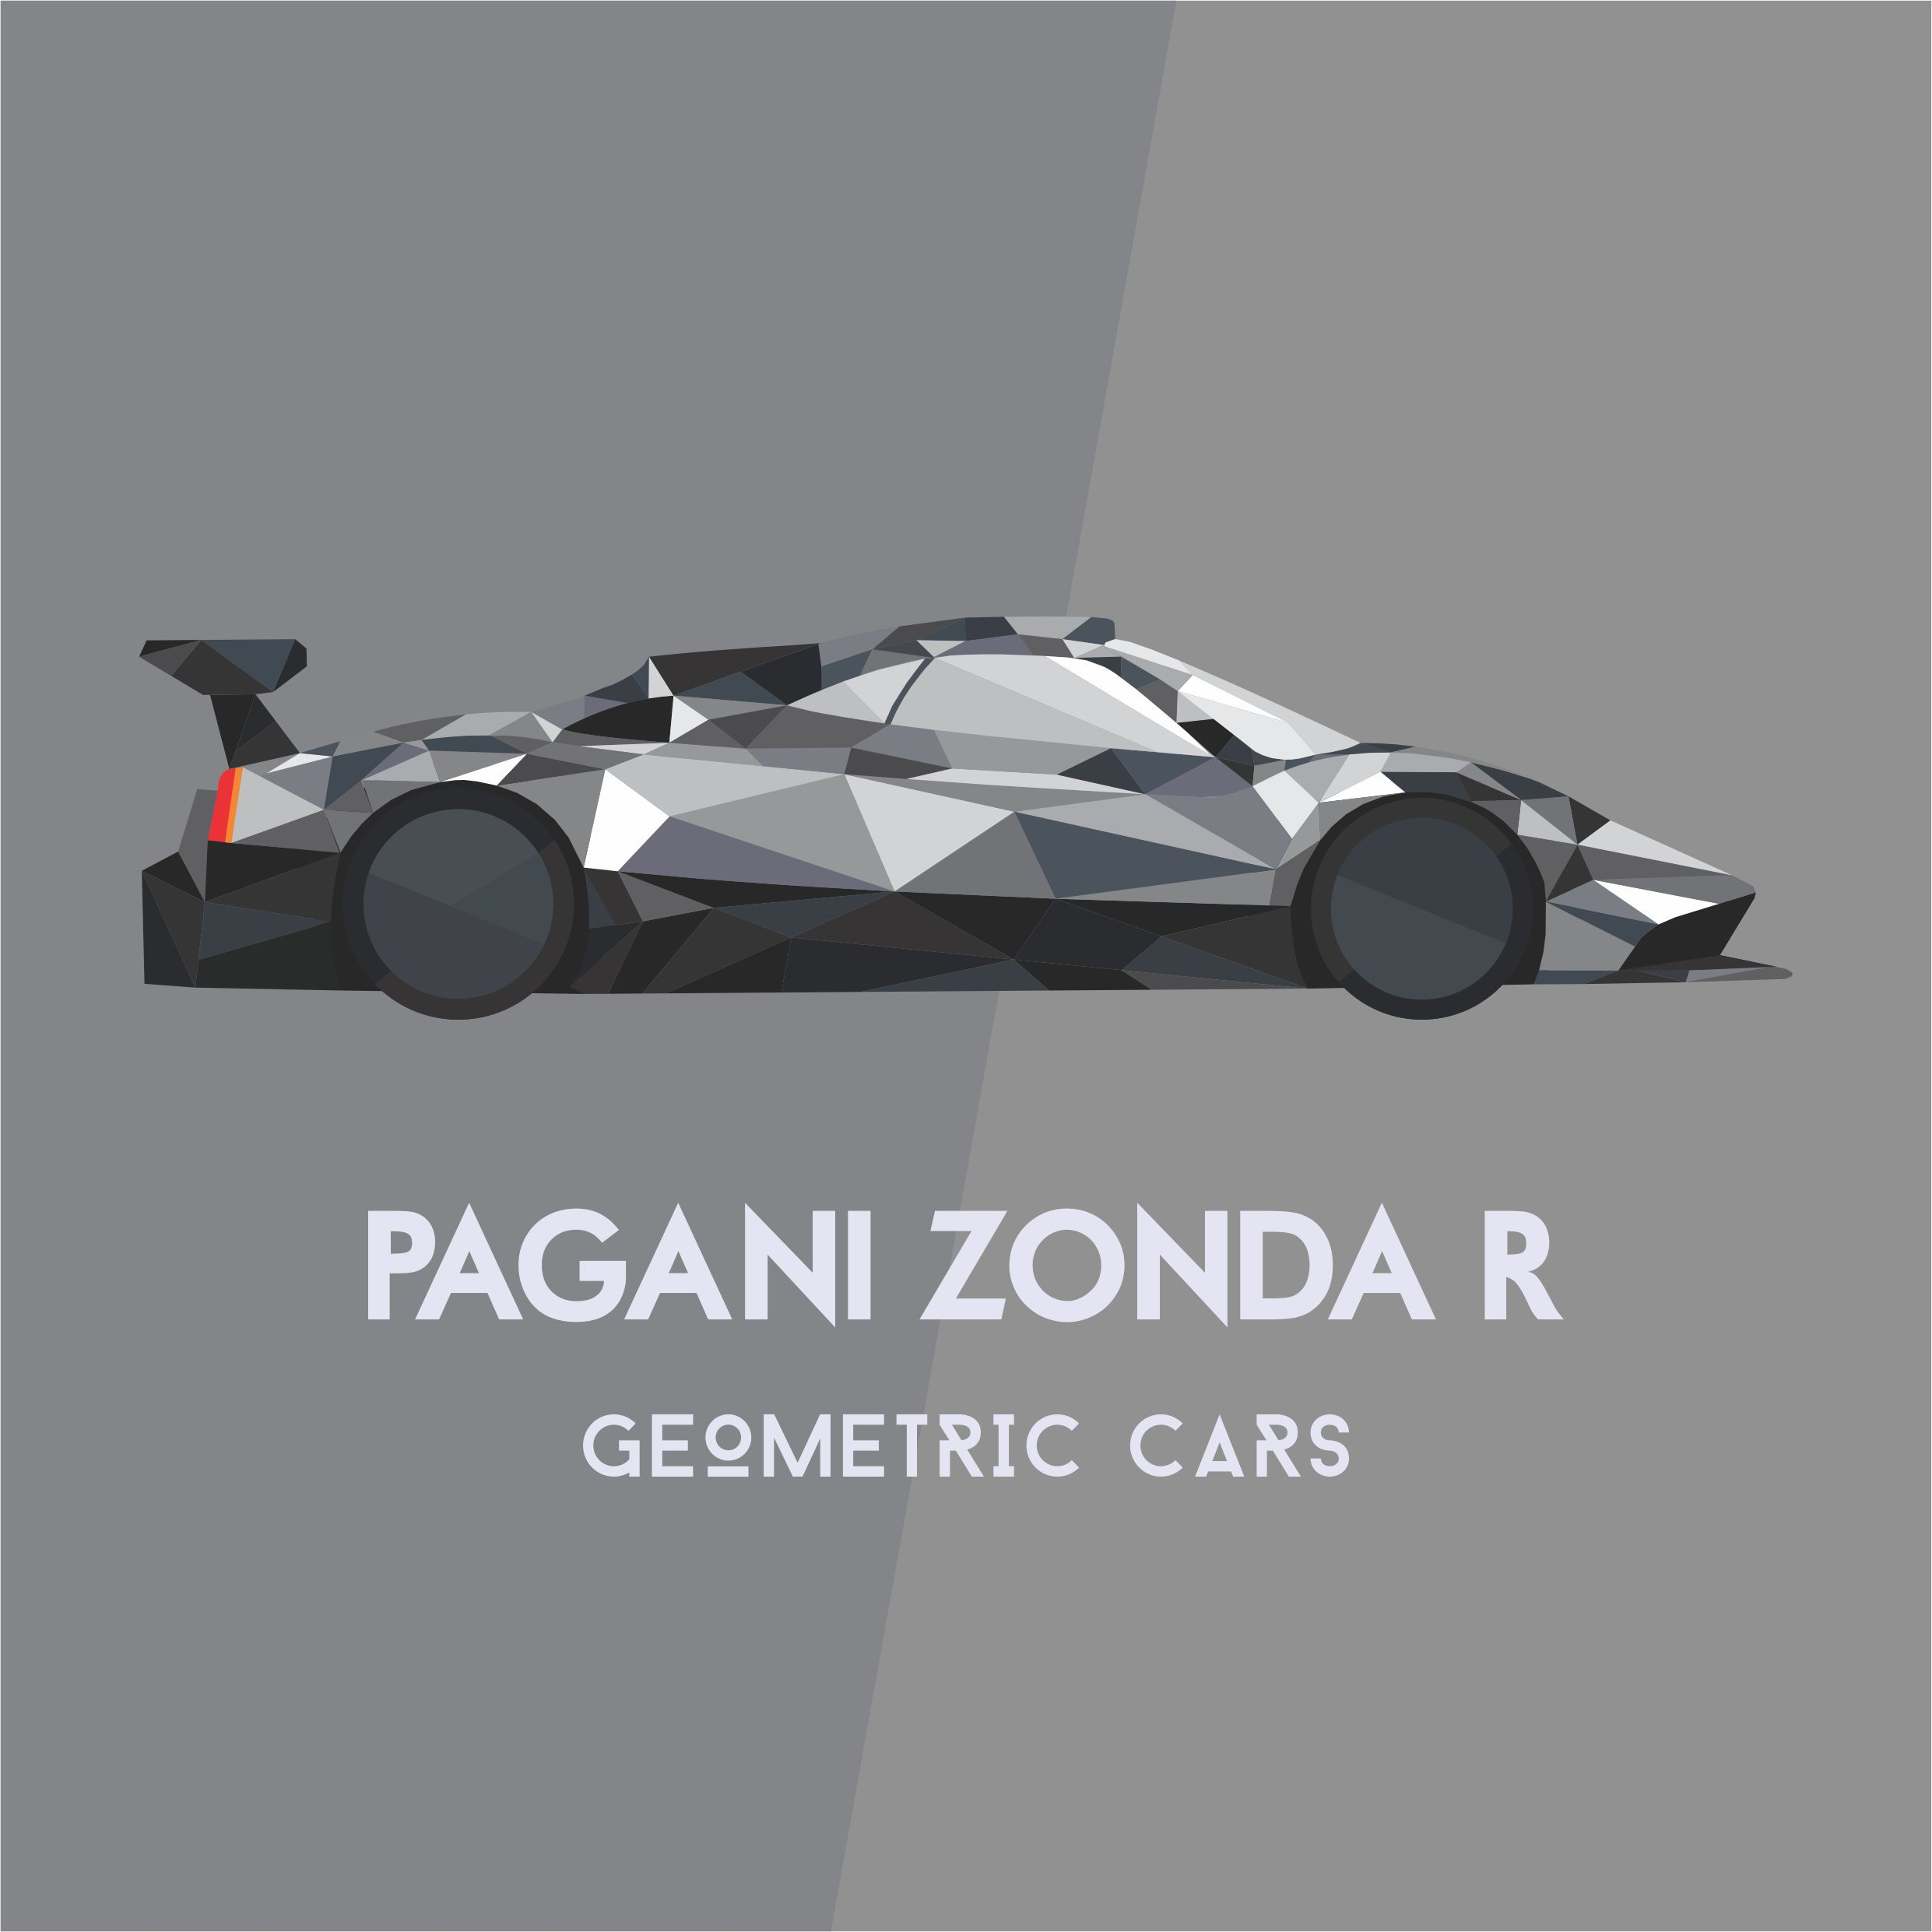 Pagani zonda r geometric car collection illustrations pagani zonda r geometric car collection biocorpaavc Images